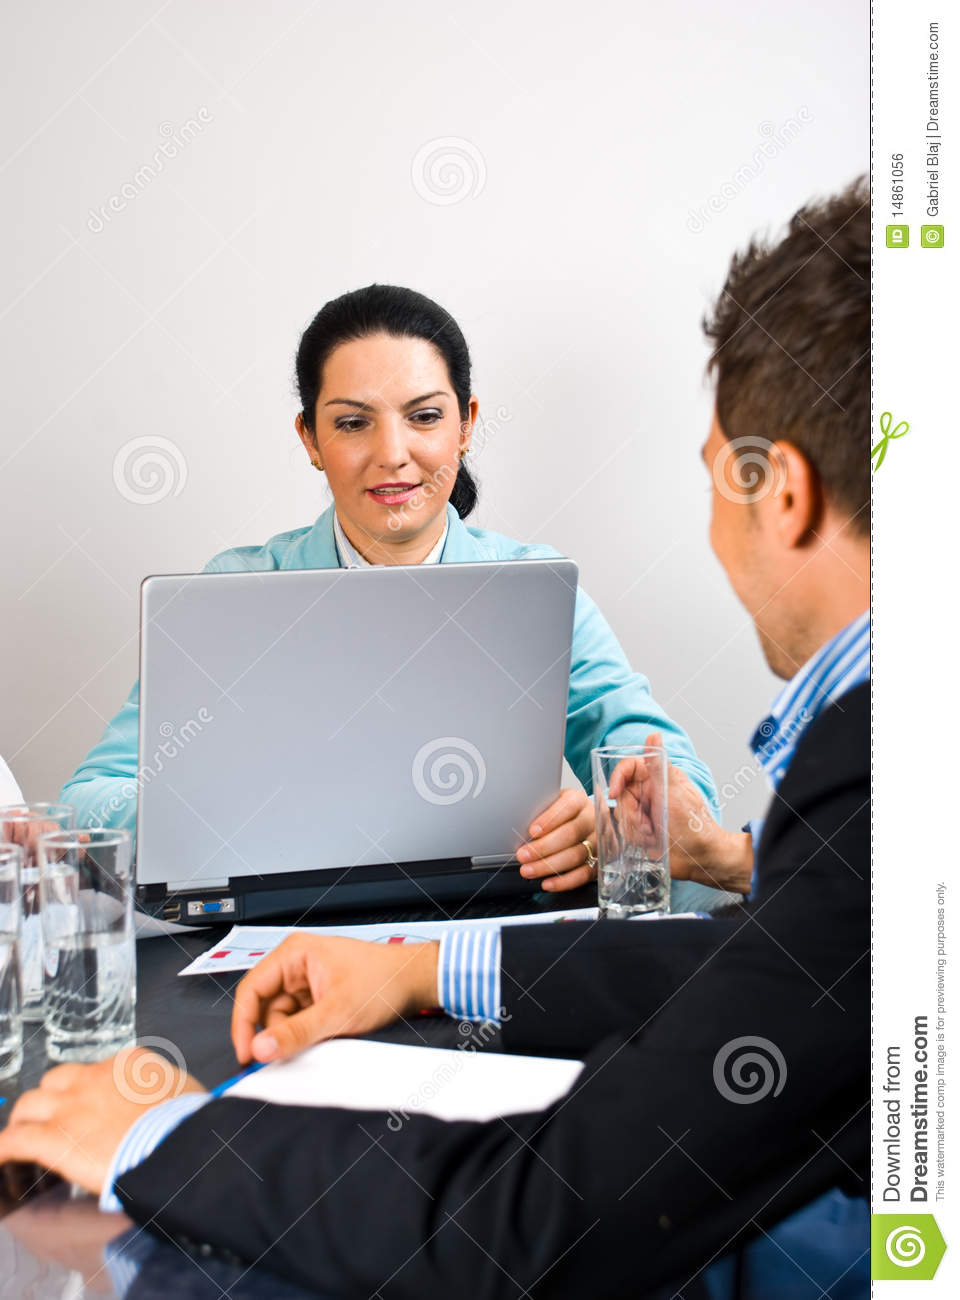 Busy business woman in the middle of meeting